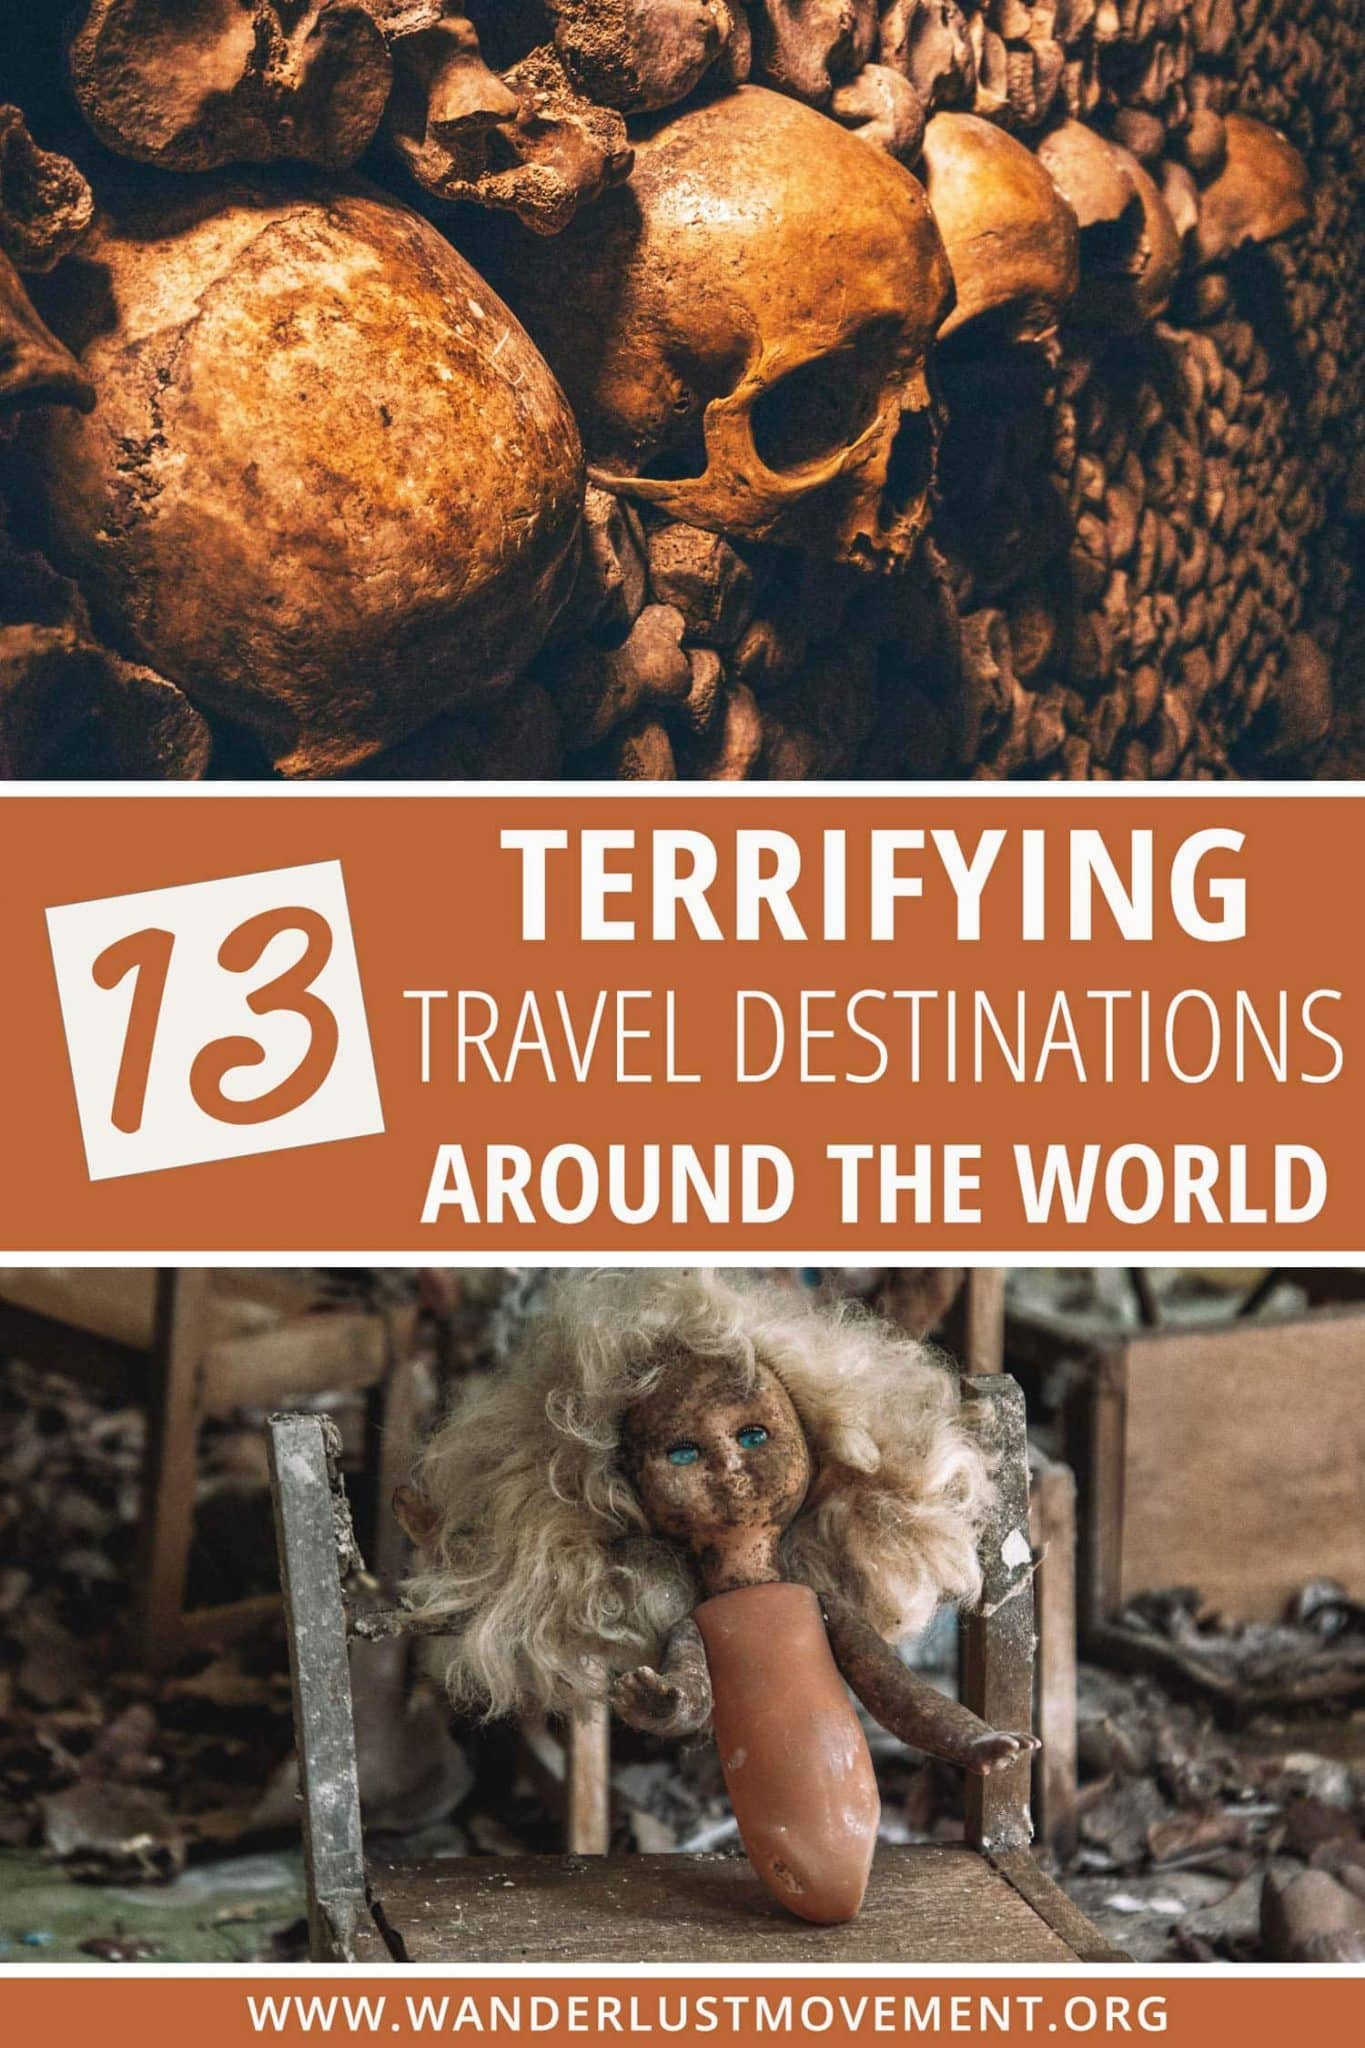 The Most Terrifying Travel Destinations That Will Give You Nightmares